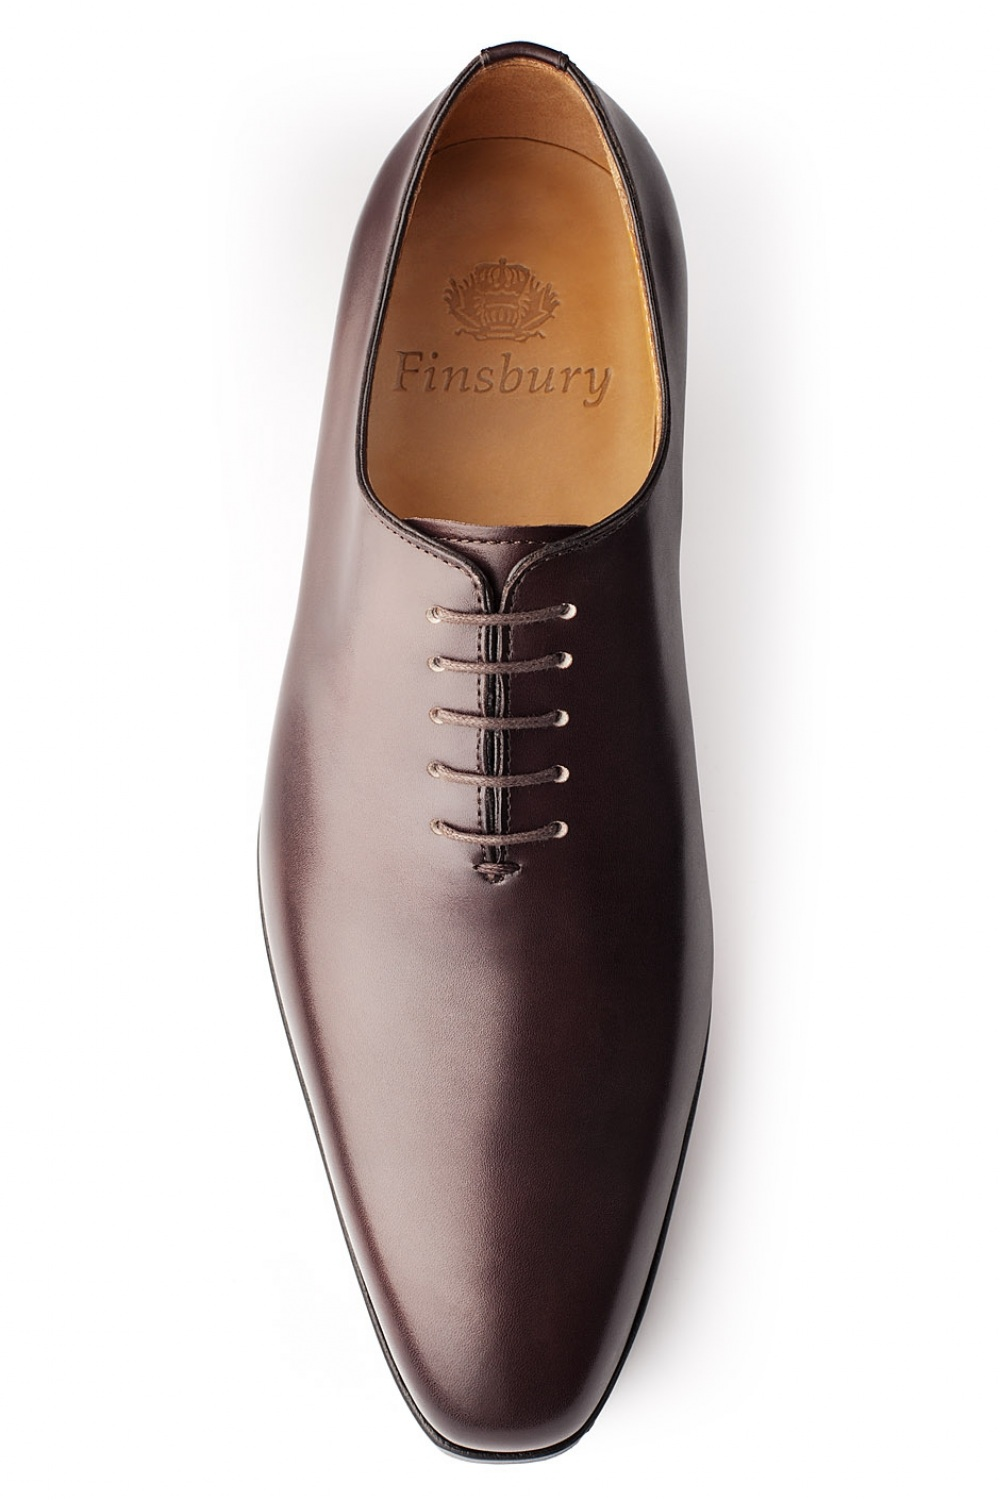 Top Broadway Shoes